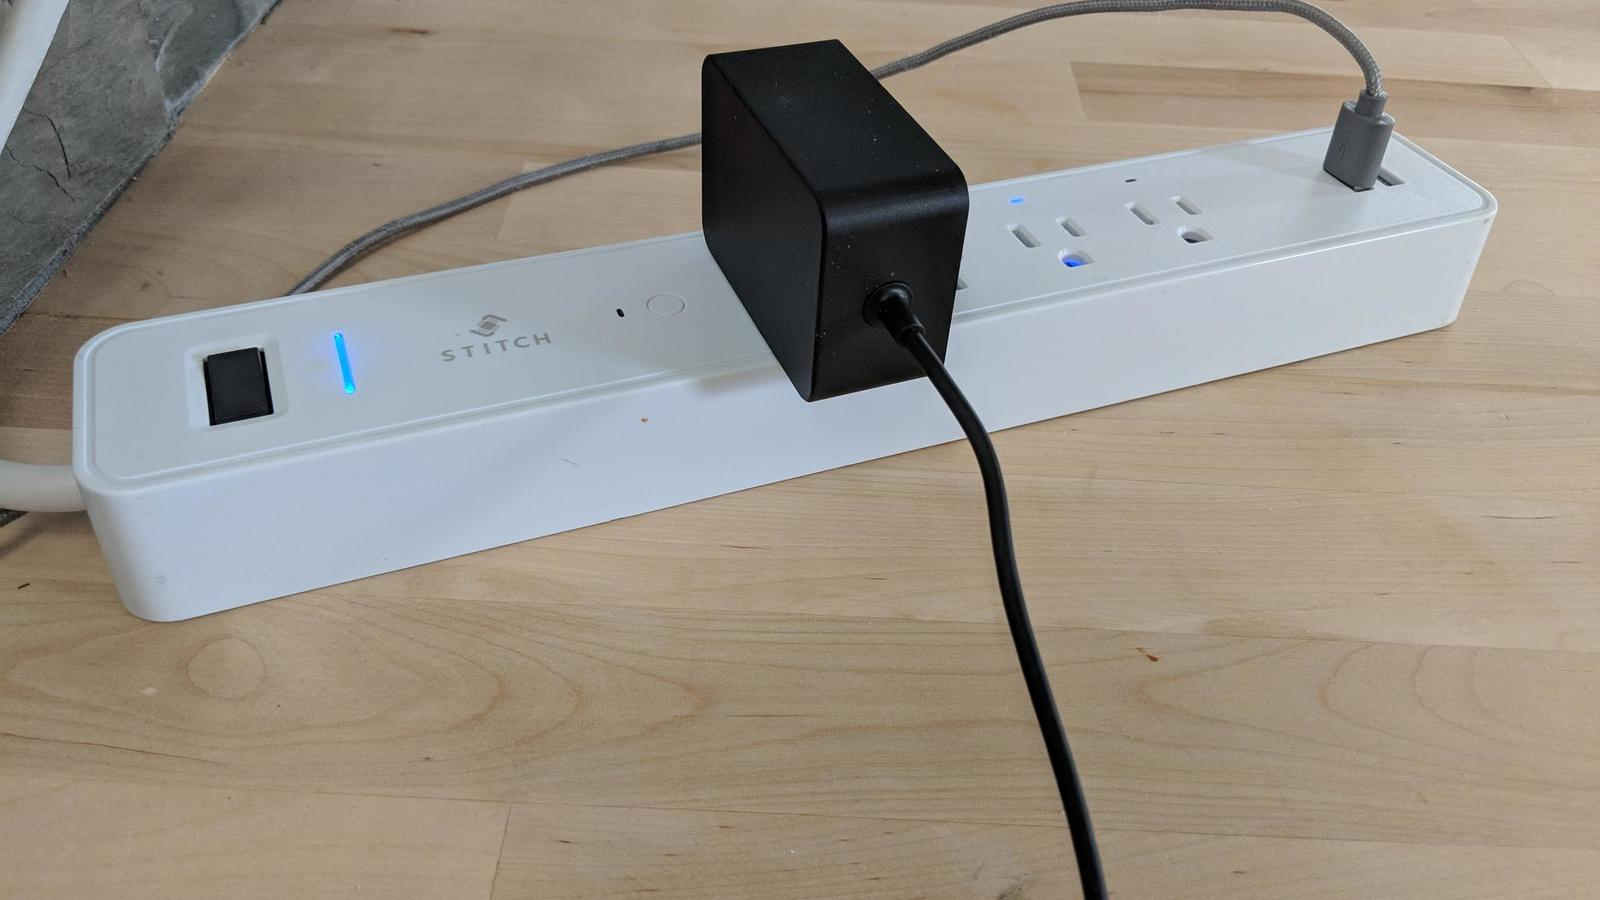 Best Answer If You Re Interested In Making Your Home More Connected A Smart Strip Gives Lot Of Options For Multiple Devices